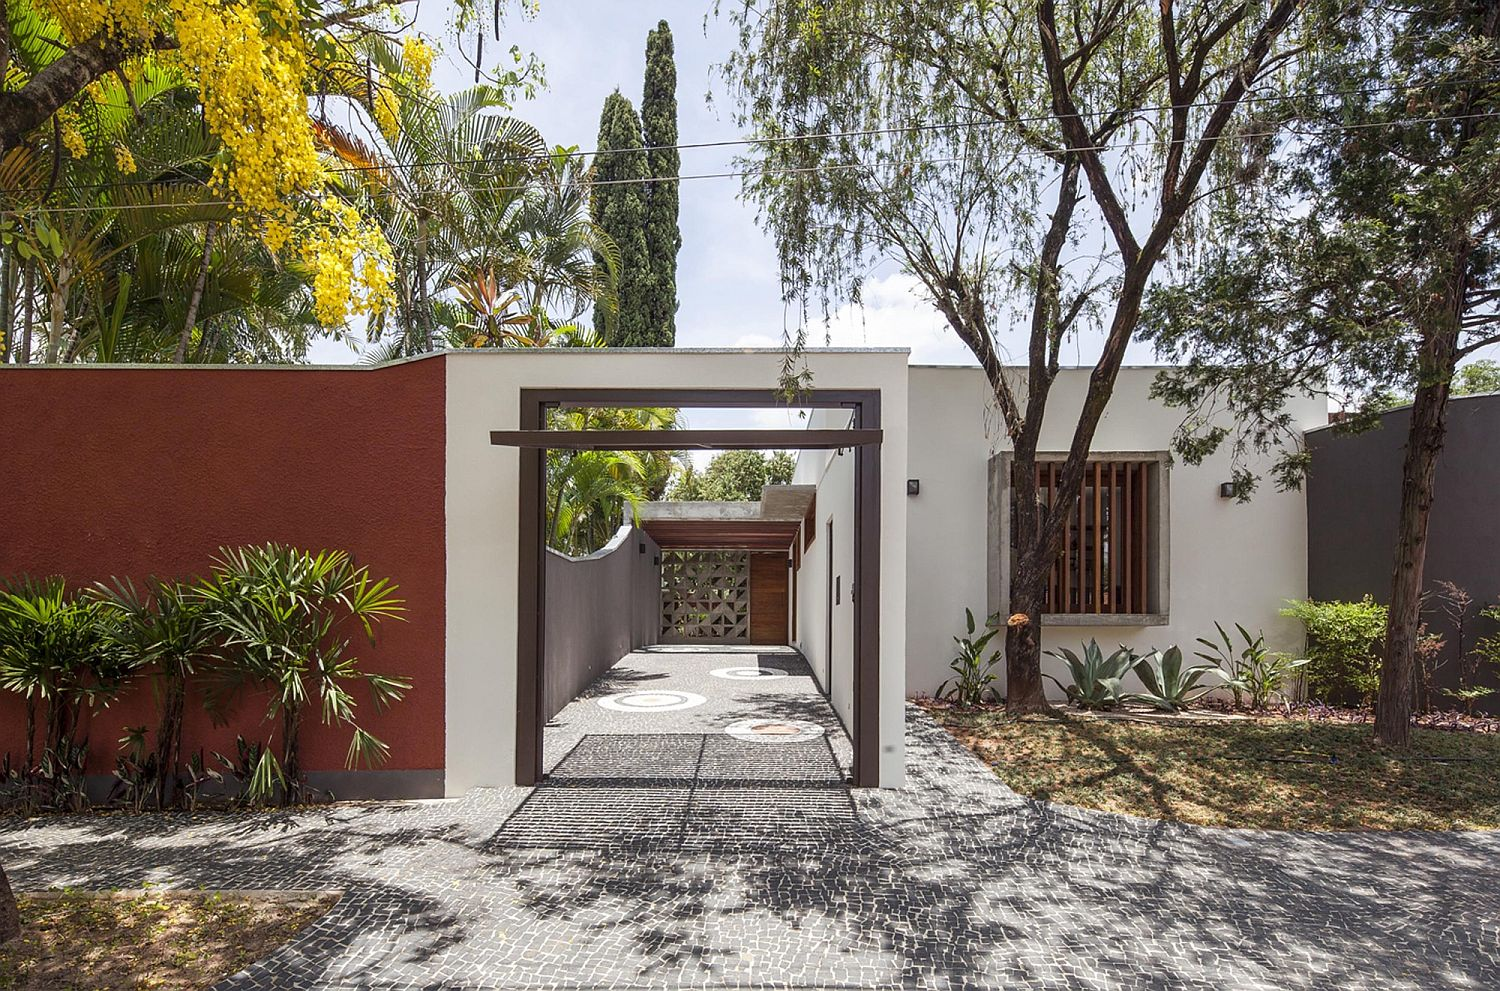 Entrance-to-the-renovated-singel-level-family-home-in-Brazil